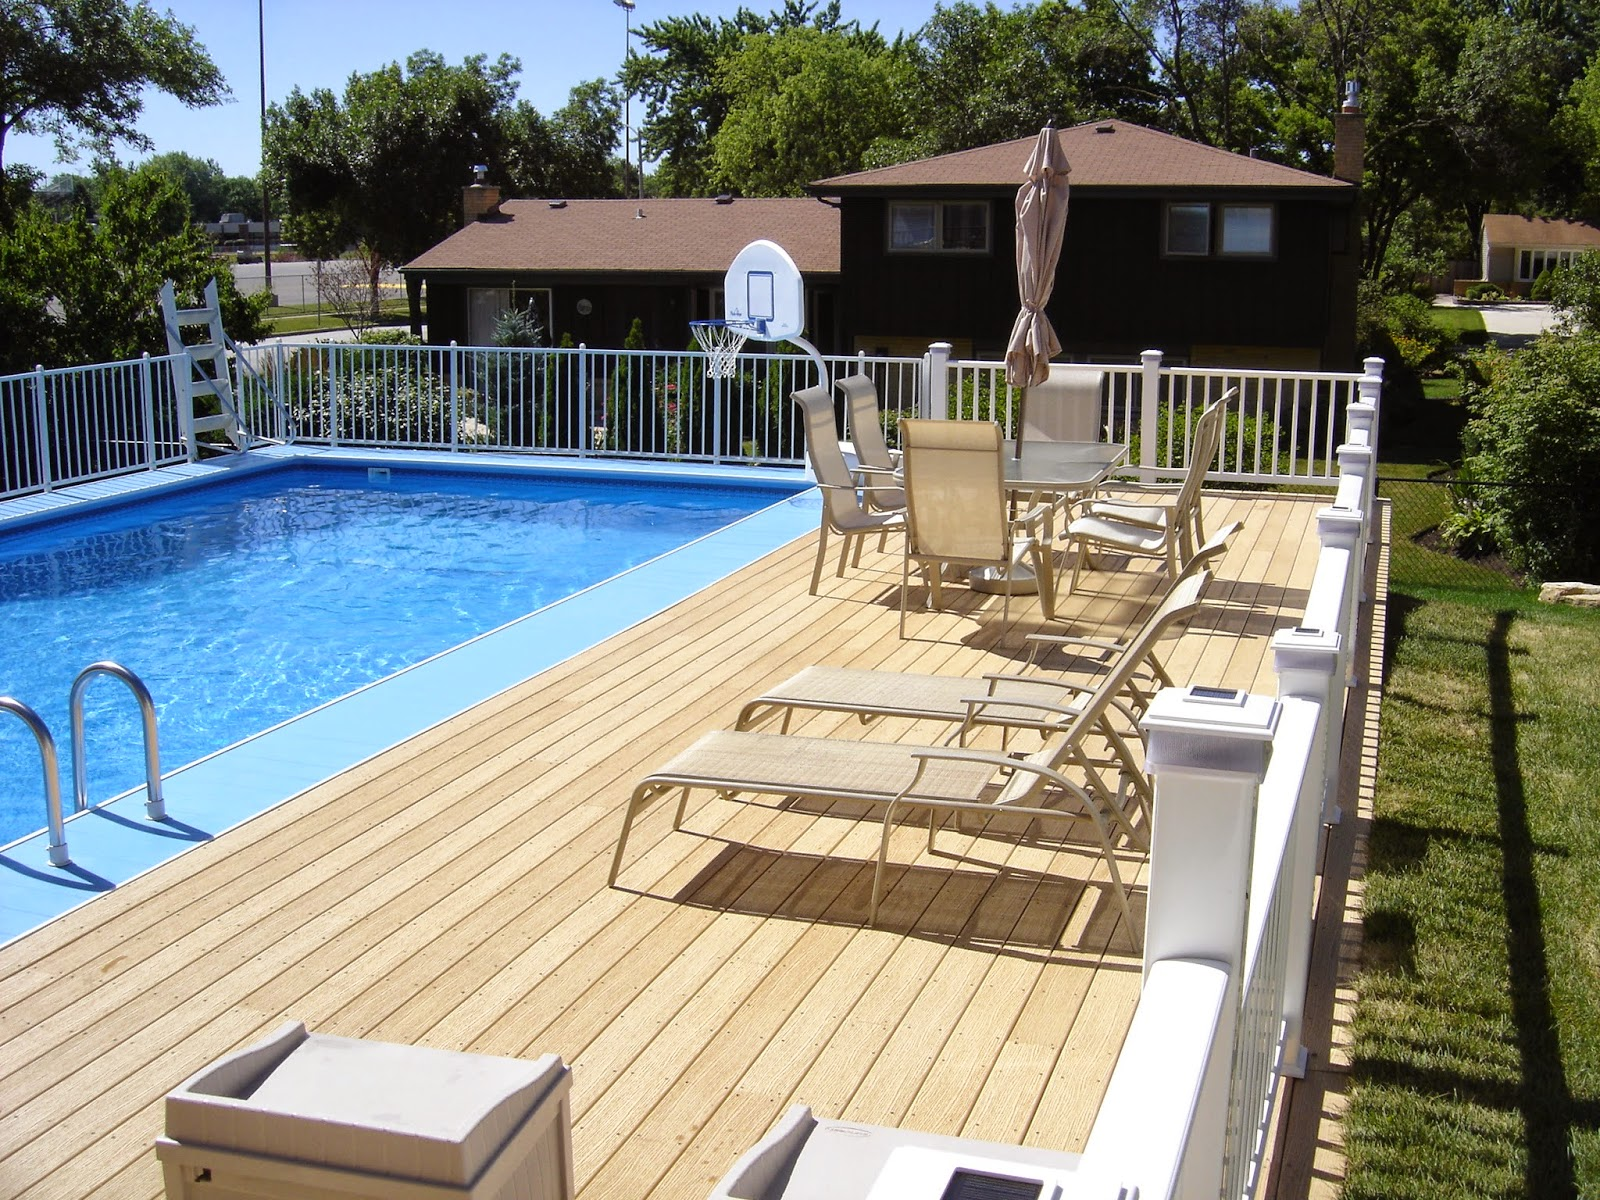 inground pool deck ideas pvc boards around inground pool time to hand paint the top rim